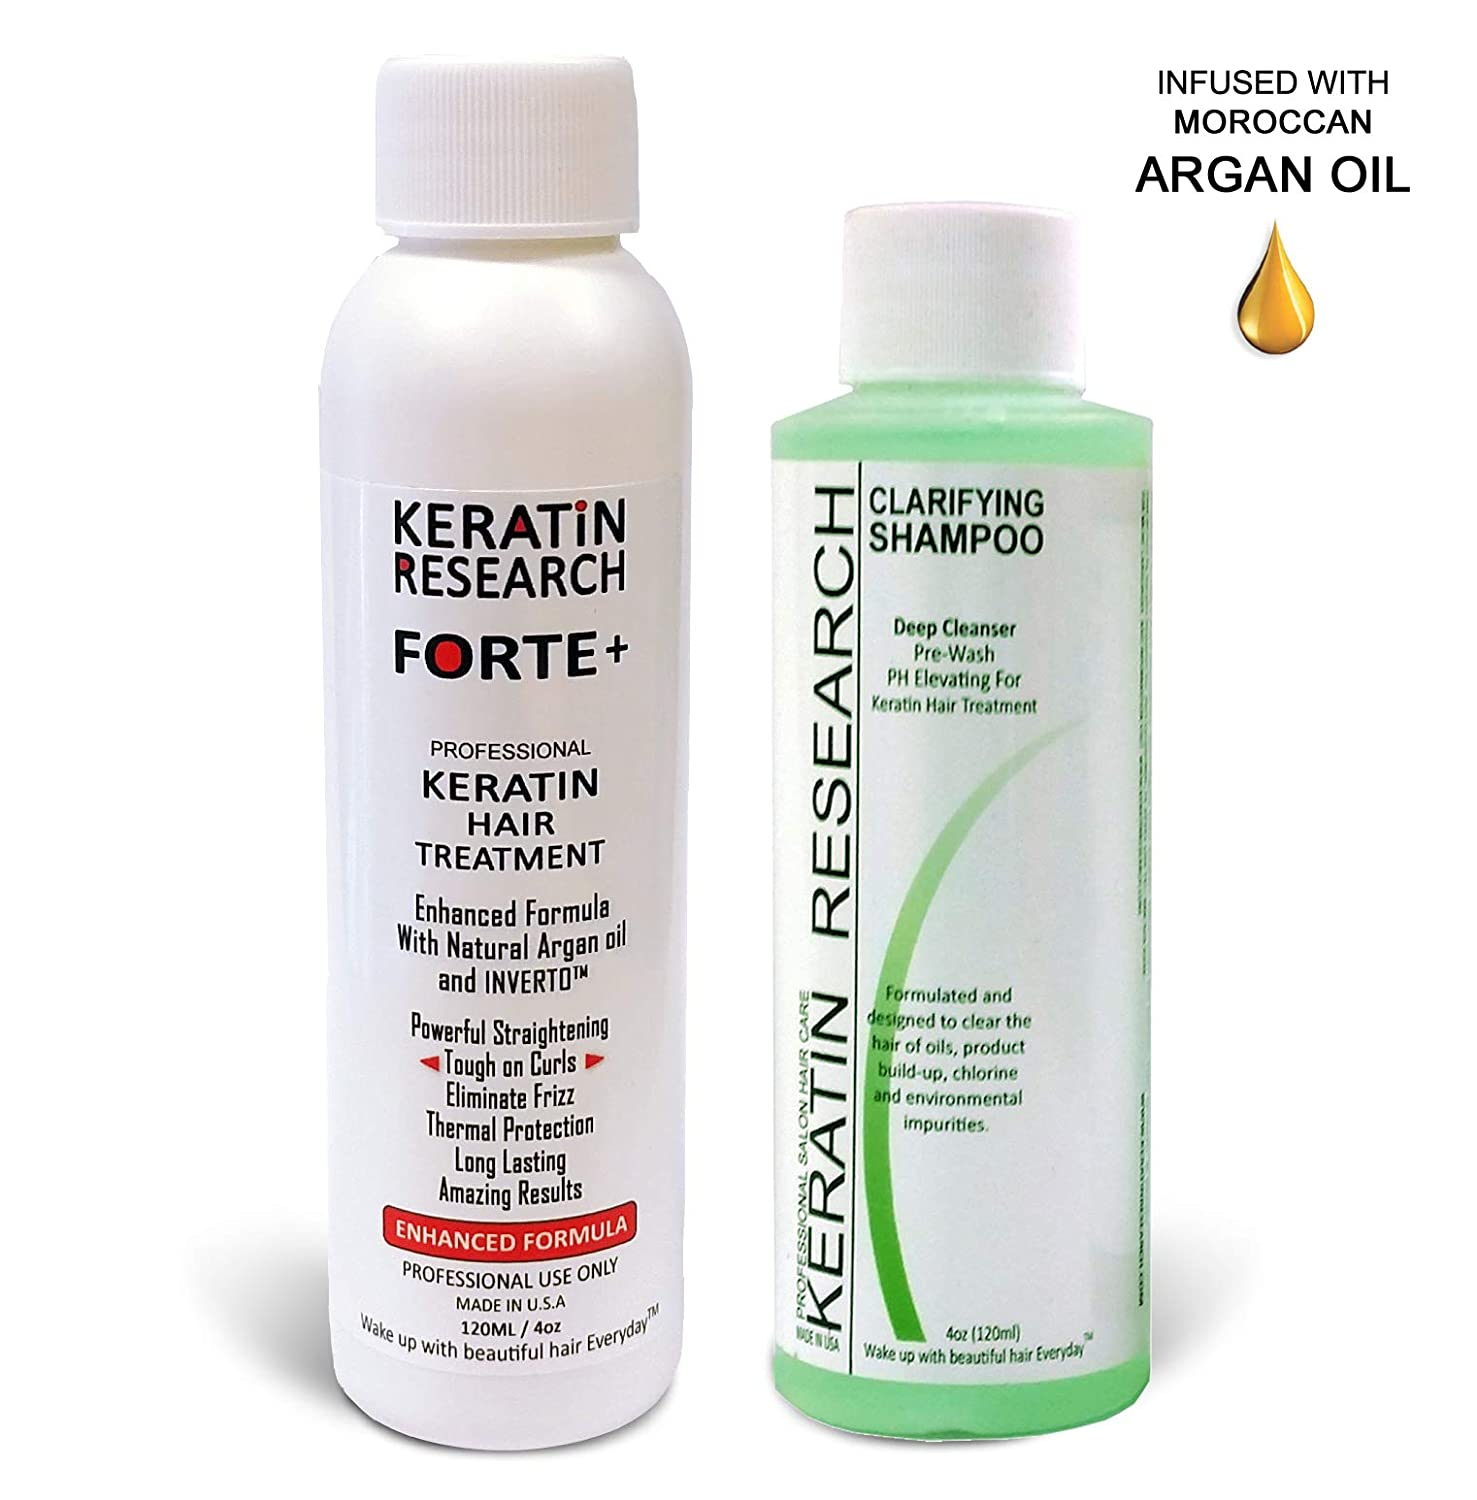 Keratin Forte Keratin Brazilian Keratin Hair Blowout Treatment Extra Strength 120ml with Clarifying Shampoo Enhanced Formula for Curly Hair By Keratin Research Queratina Keratina Brasilera Forte